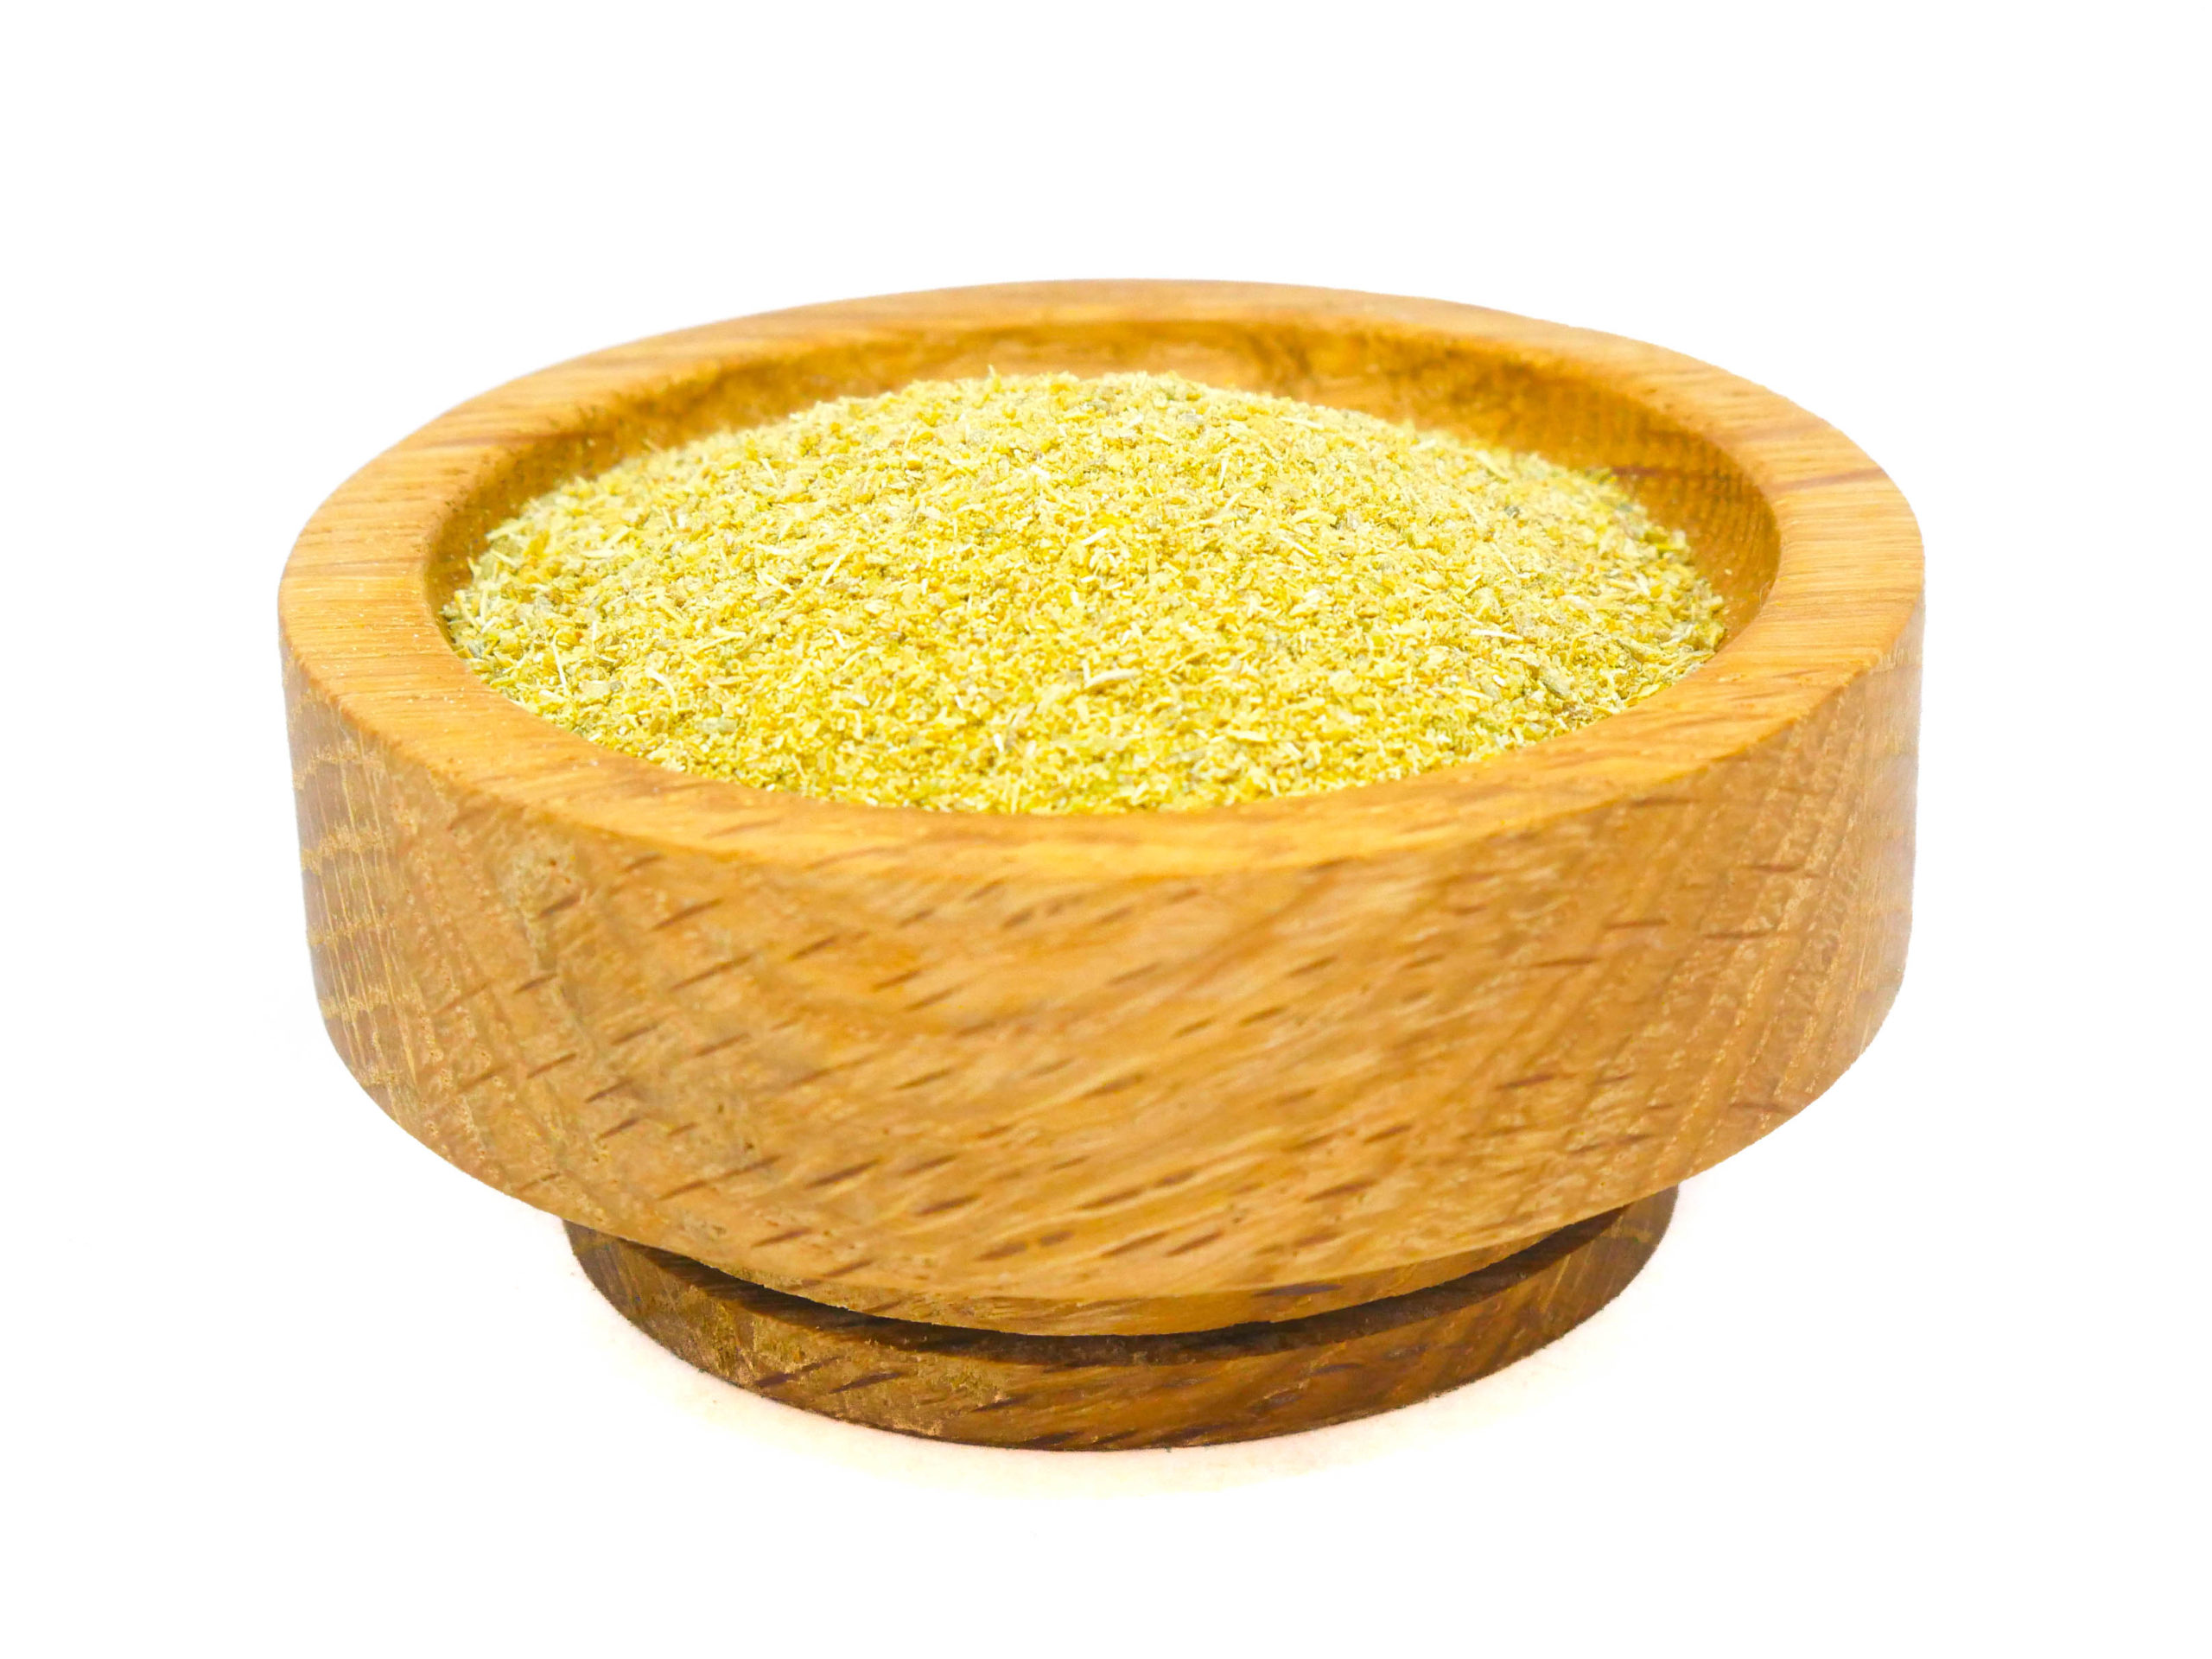 Ground Fennel Seed from the Natural Spot